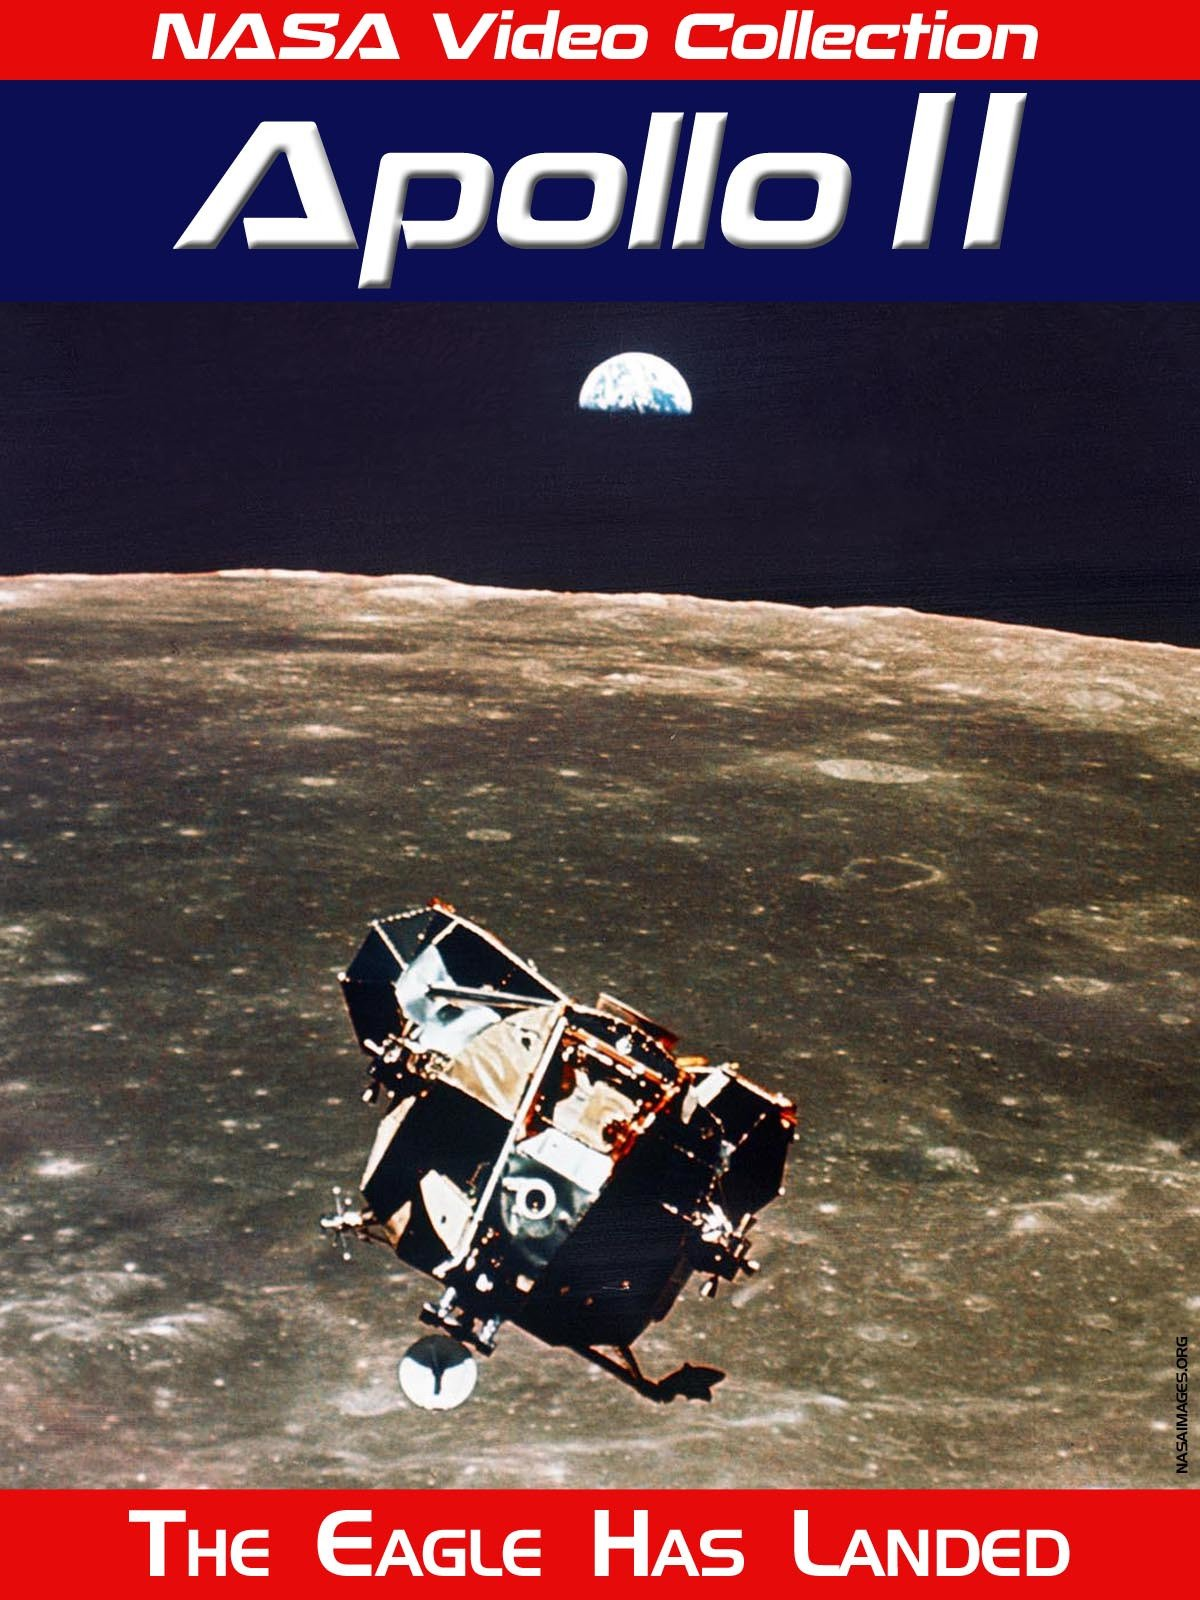 NASA Video Collection: Apollo 11